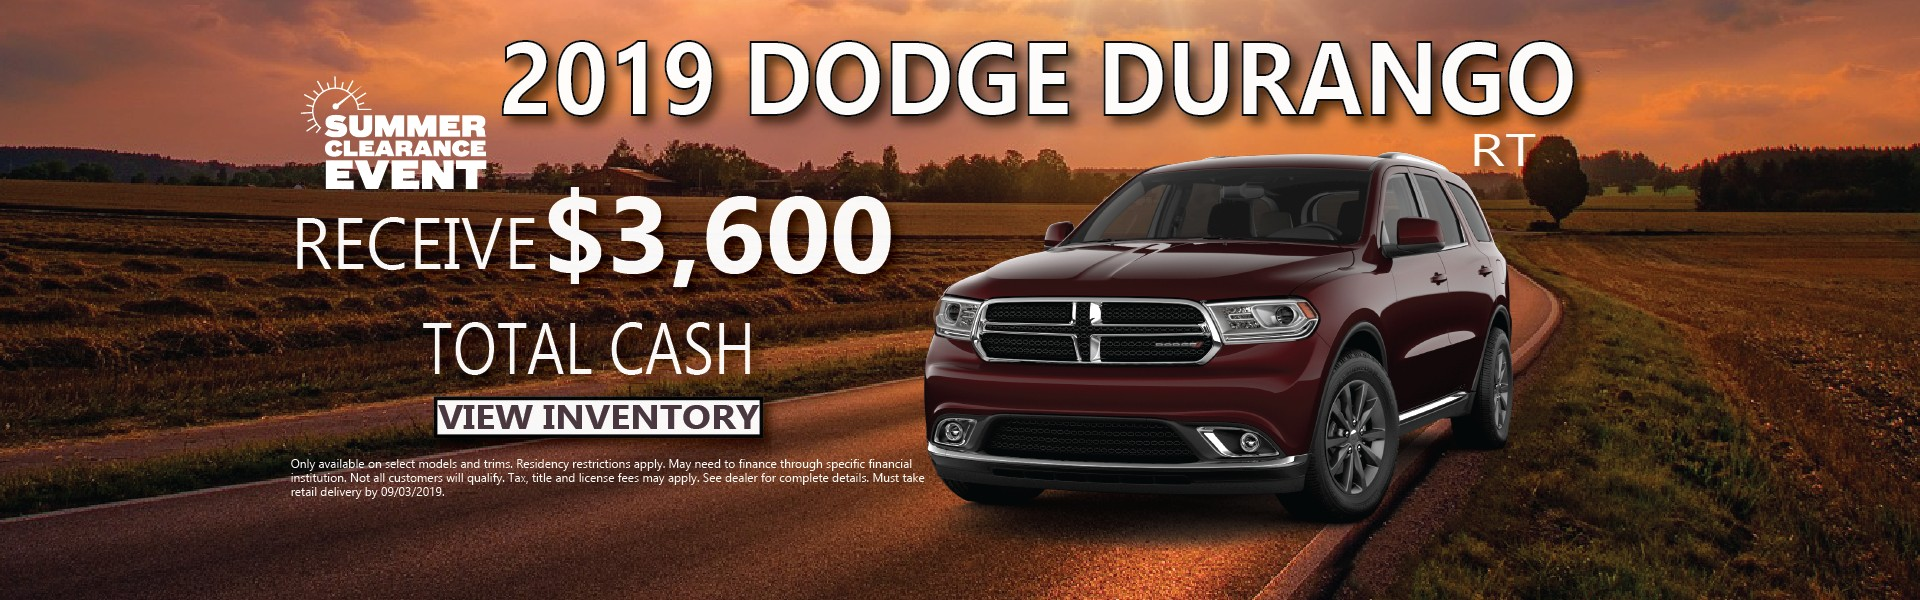 2019 Dodge Durango Finance Offer